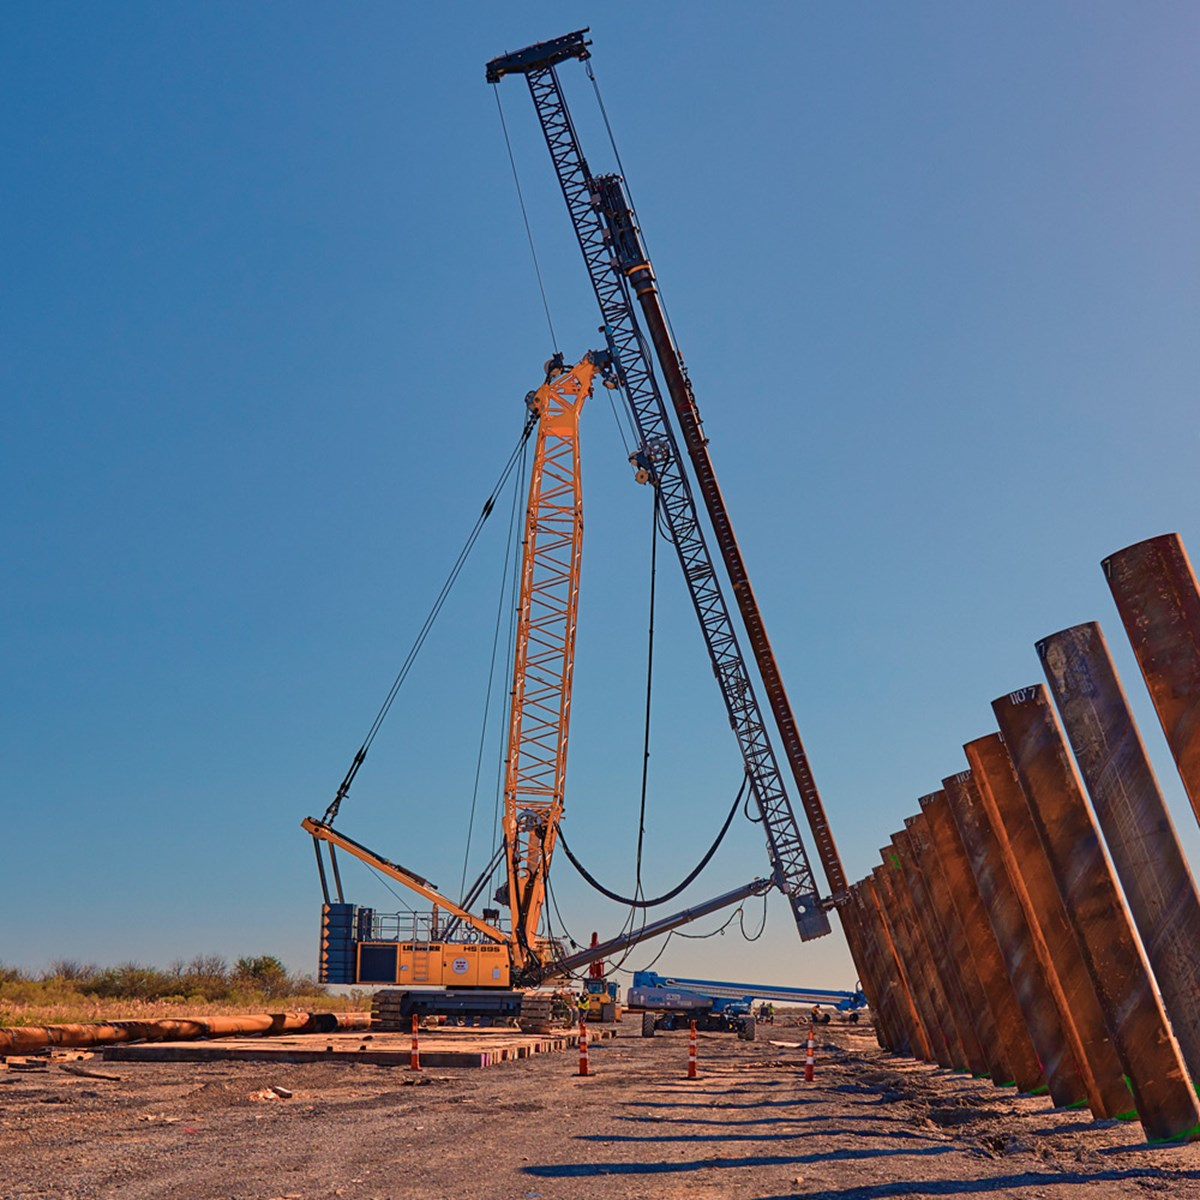 liebherr-lrh-600-piling-rig-with-lattice-boom-leader-and-hammer-h15l.jpg